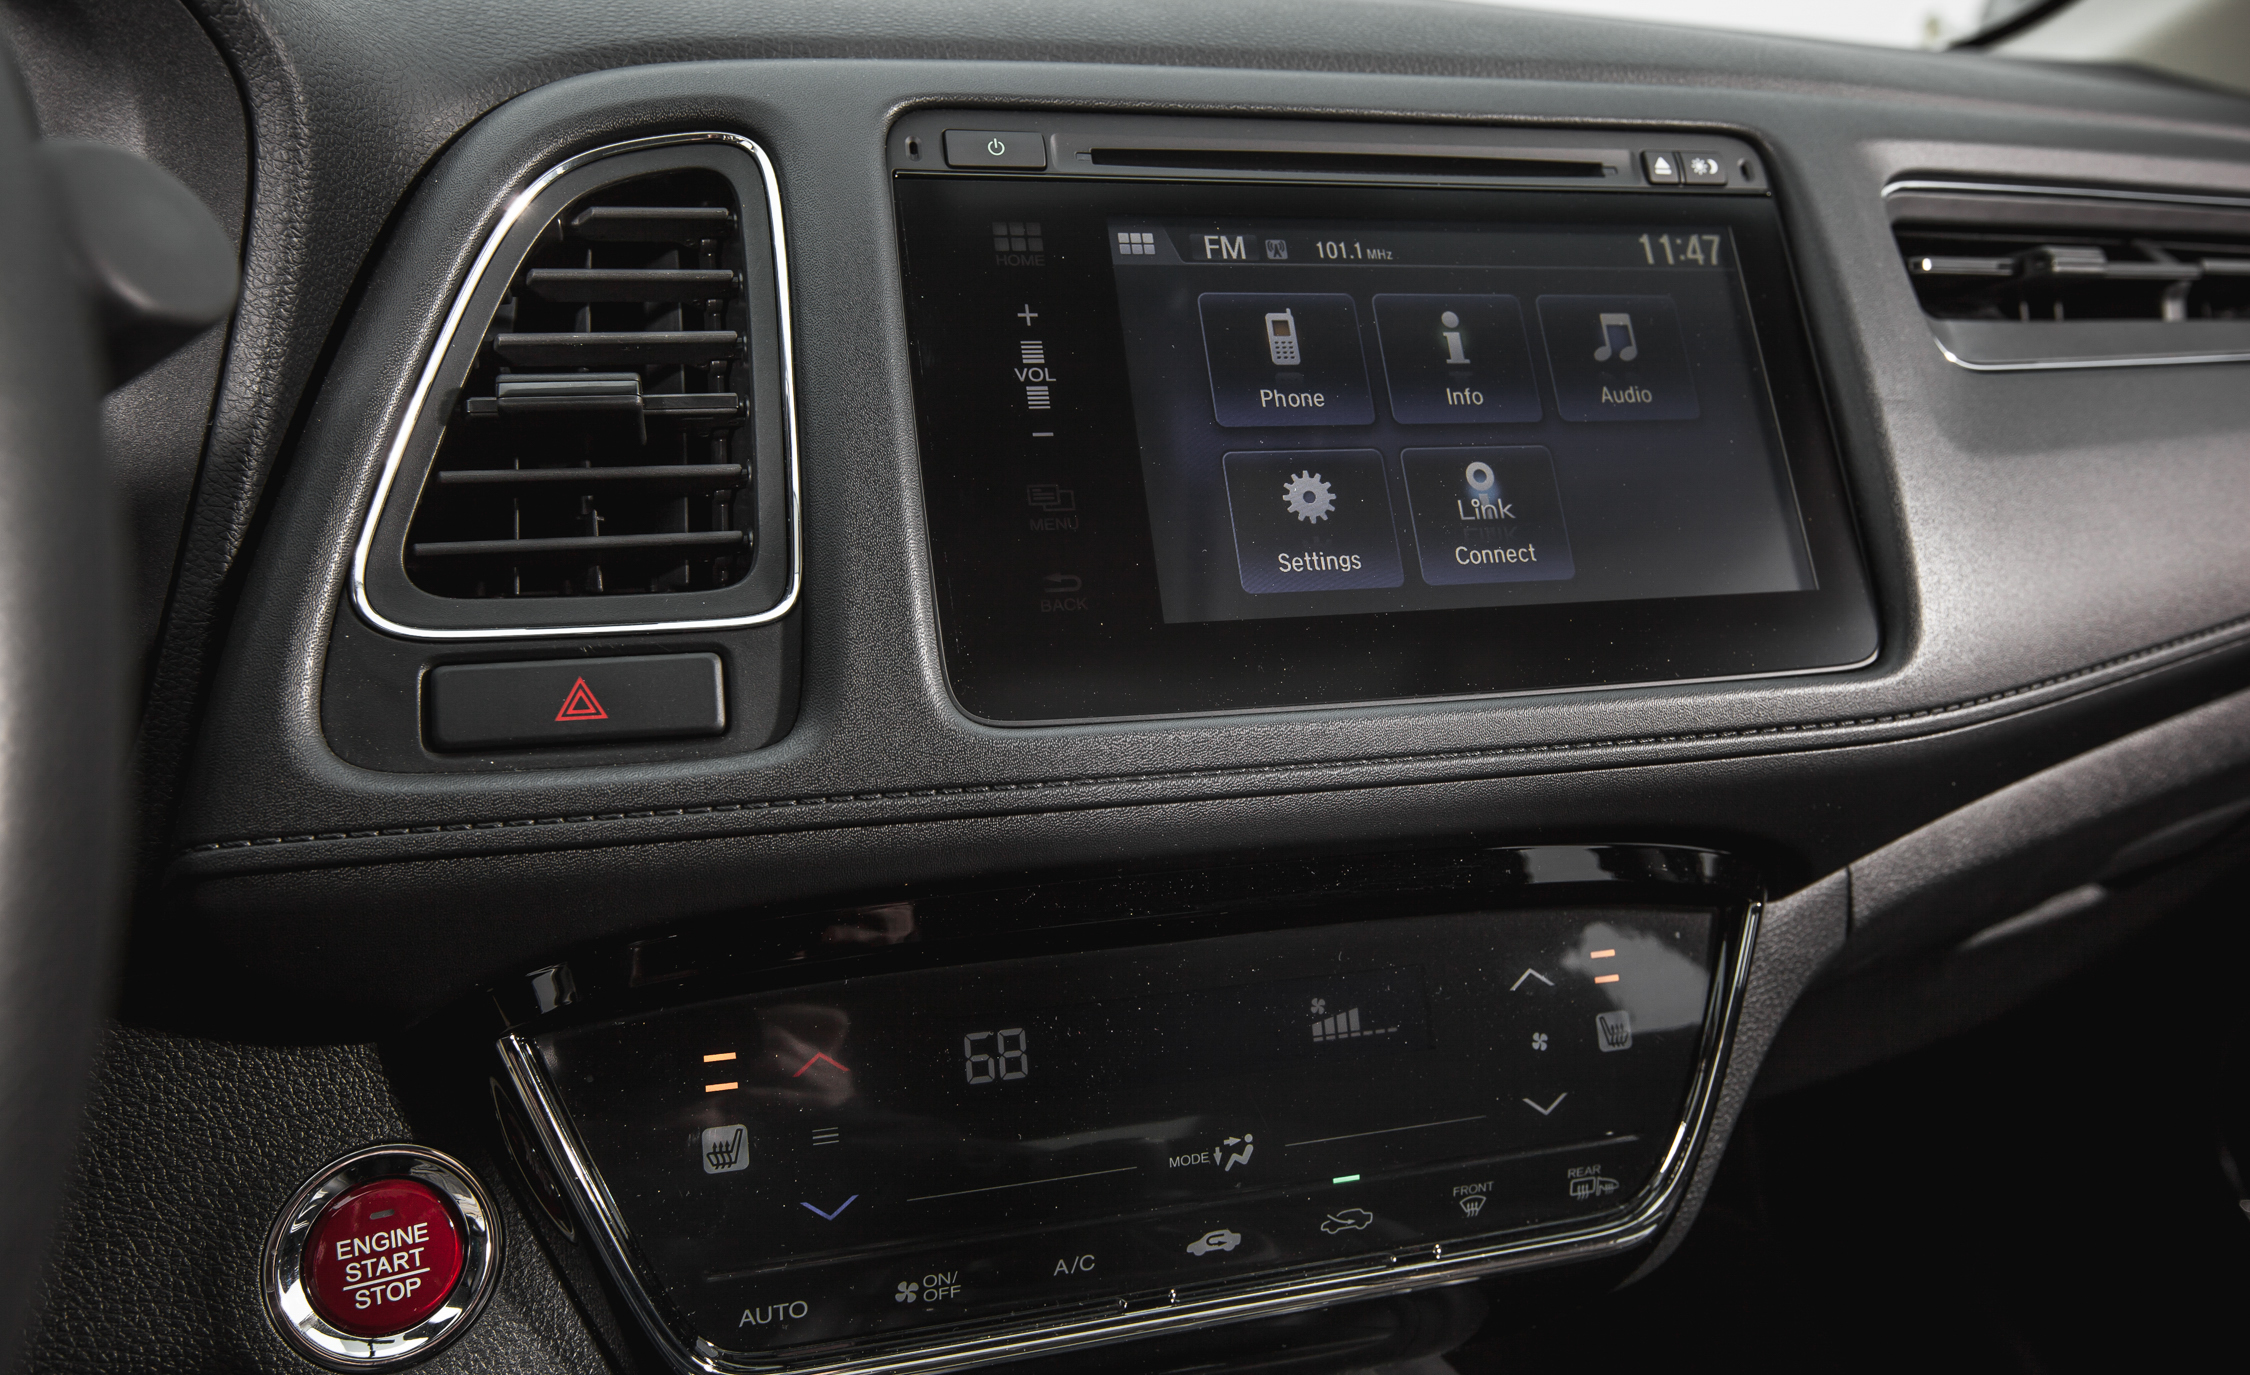 2016 Honda HR-V Interior Center Head Unit